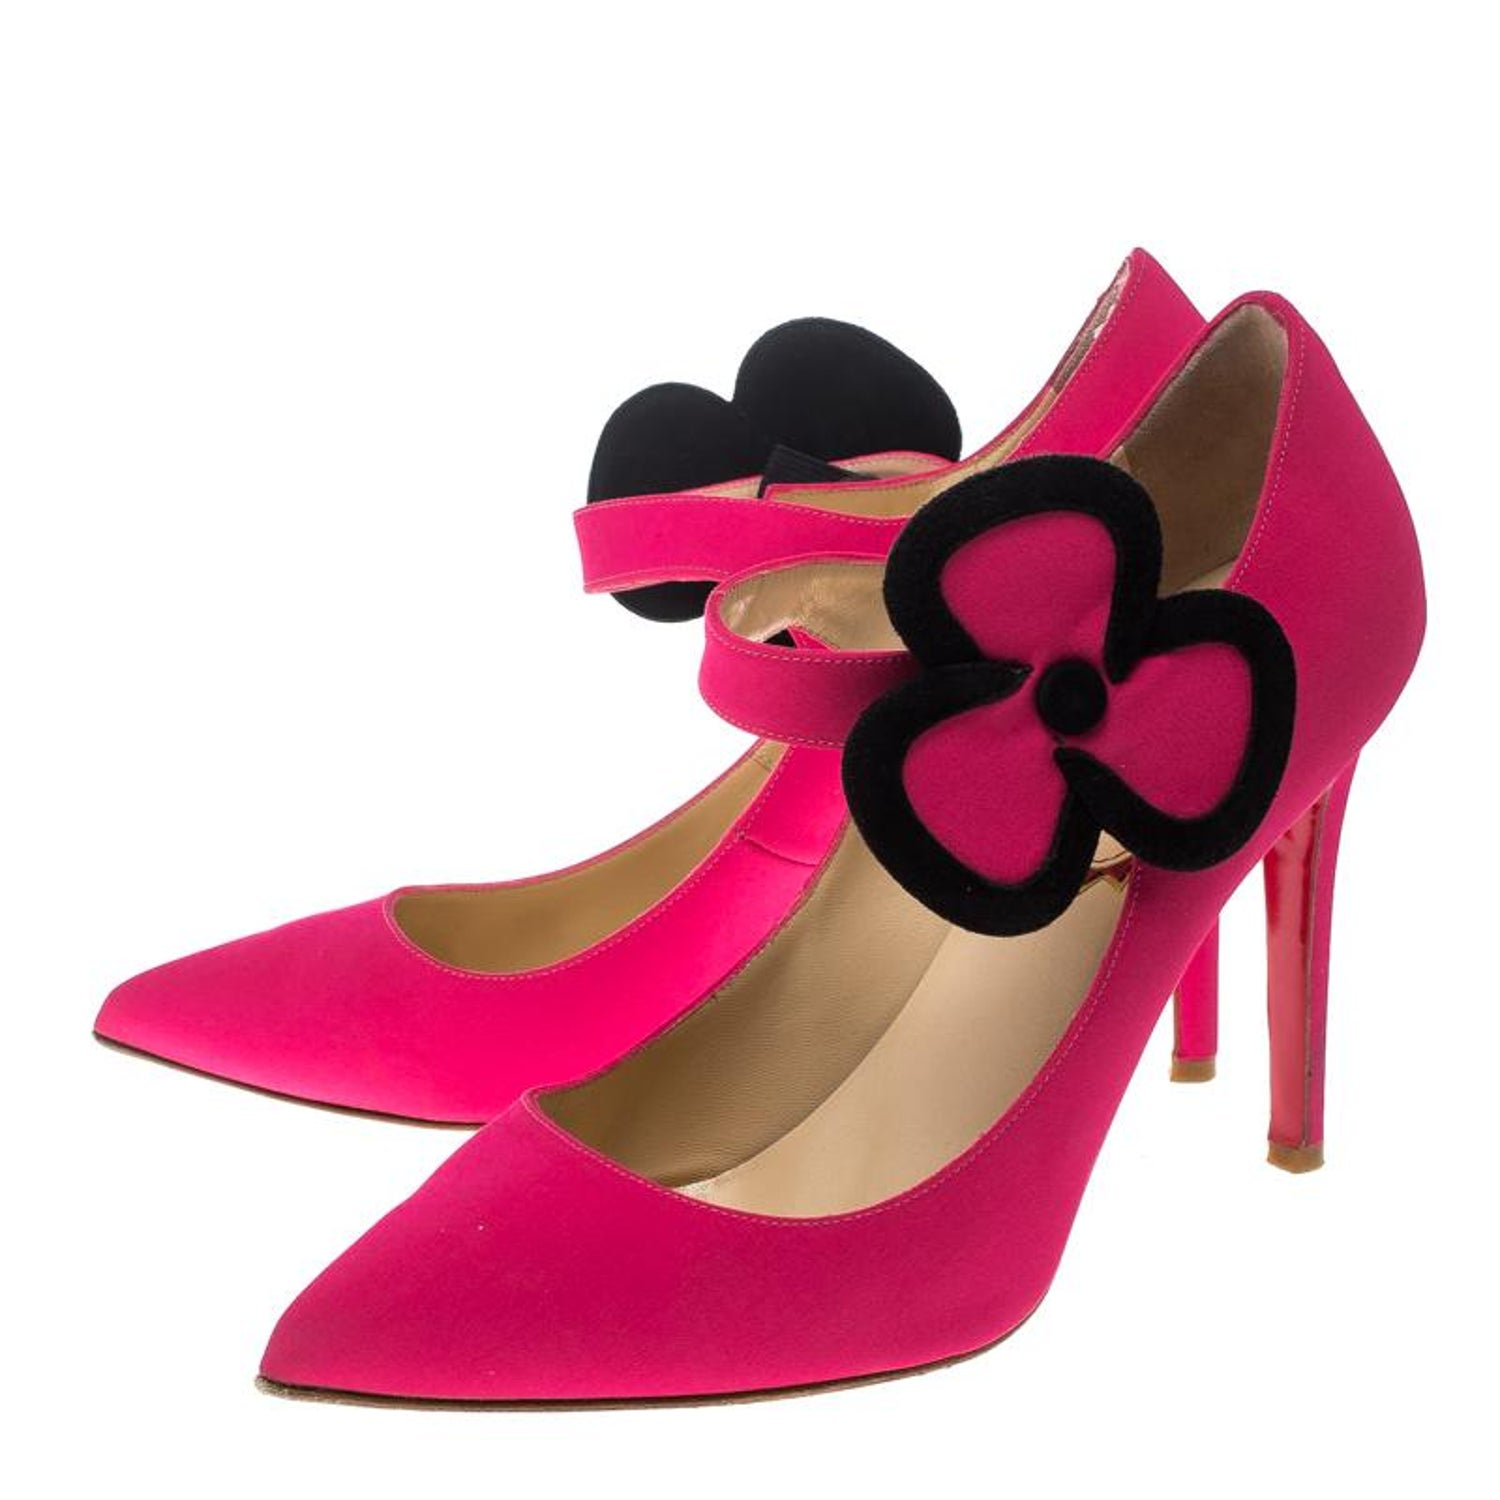 37e9c4911 Christian Louboutin Pink Satin Pensee Mary Jane Pumps Size 39 For Sale at  1stdibs